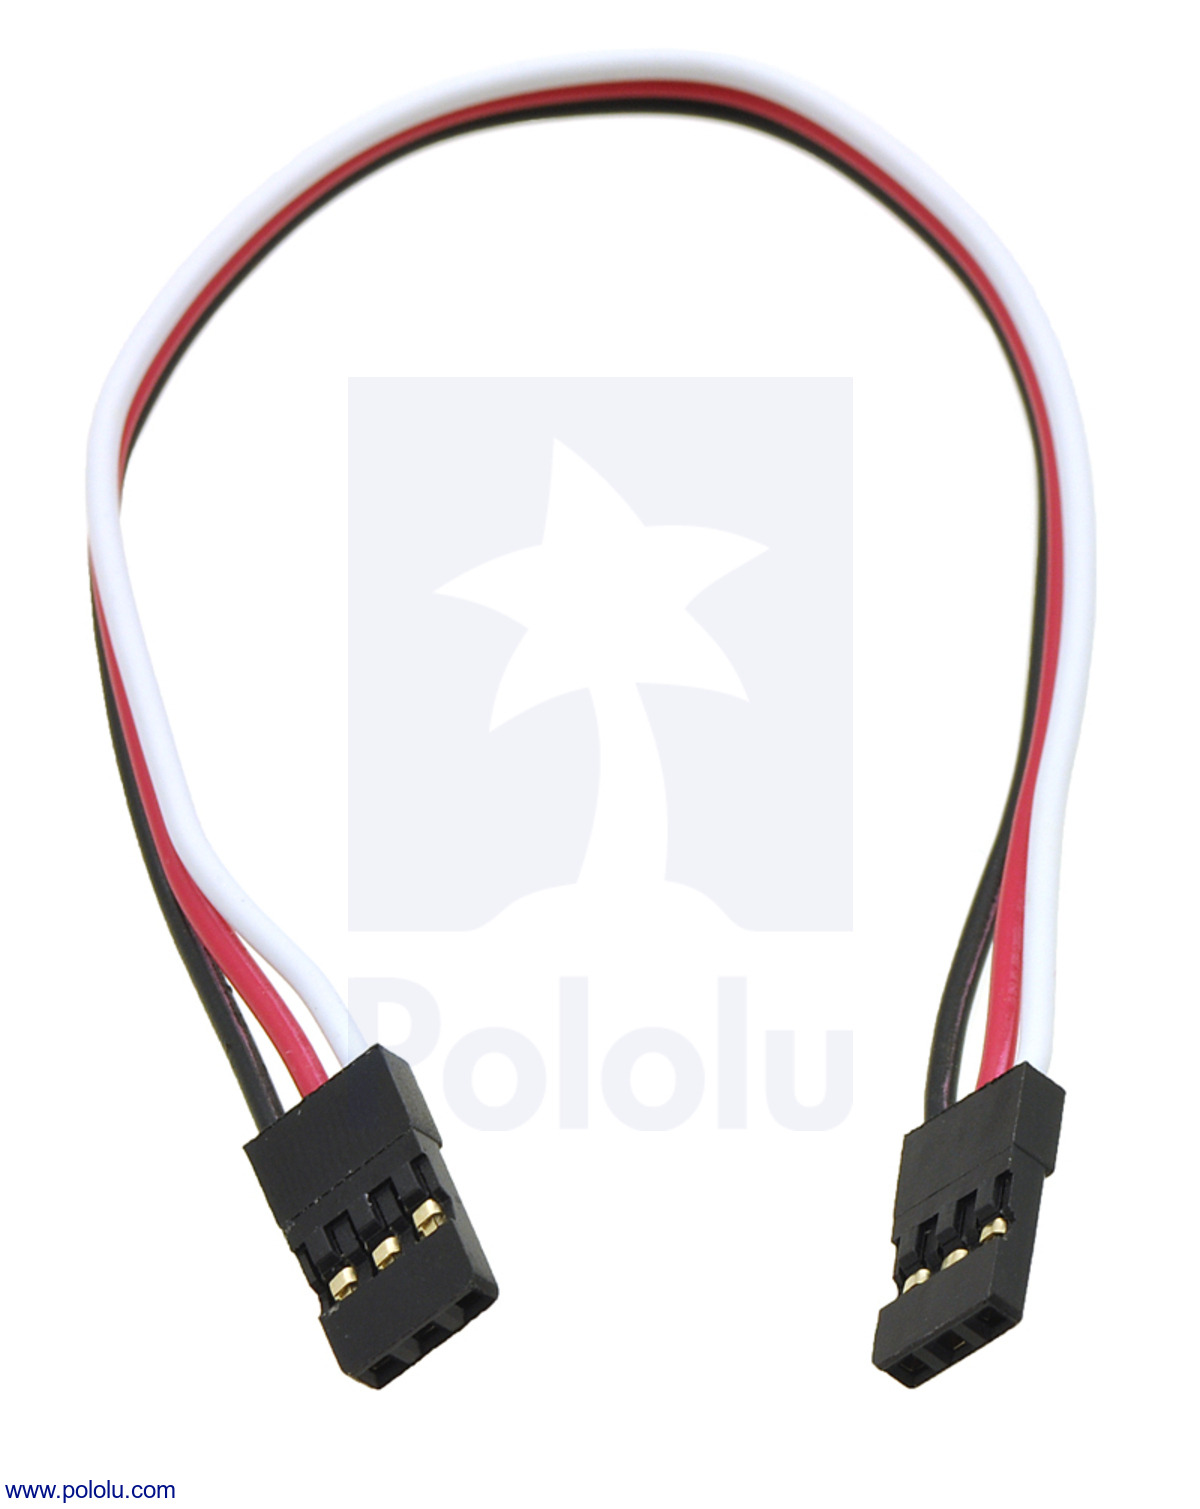 Pololu - Servo Extension Cable 6\